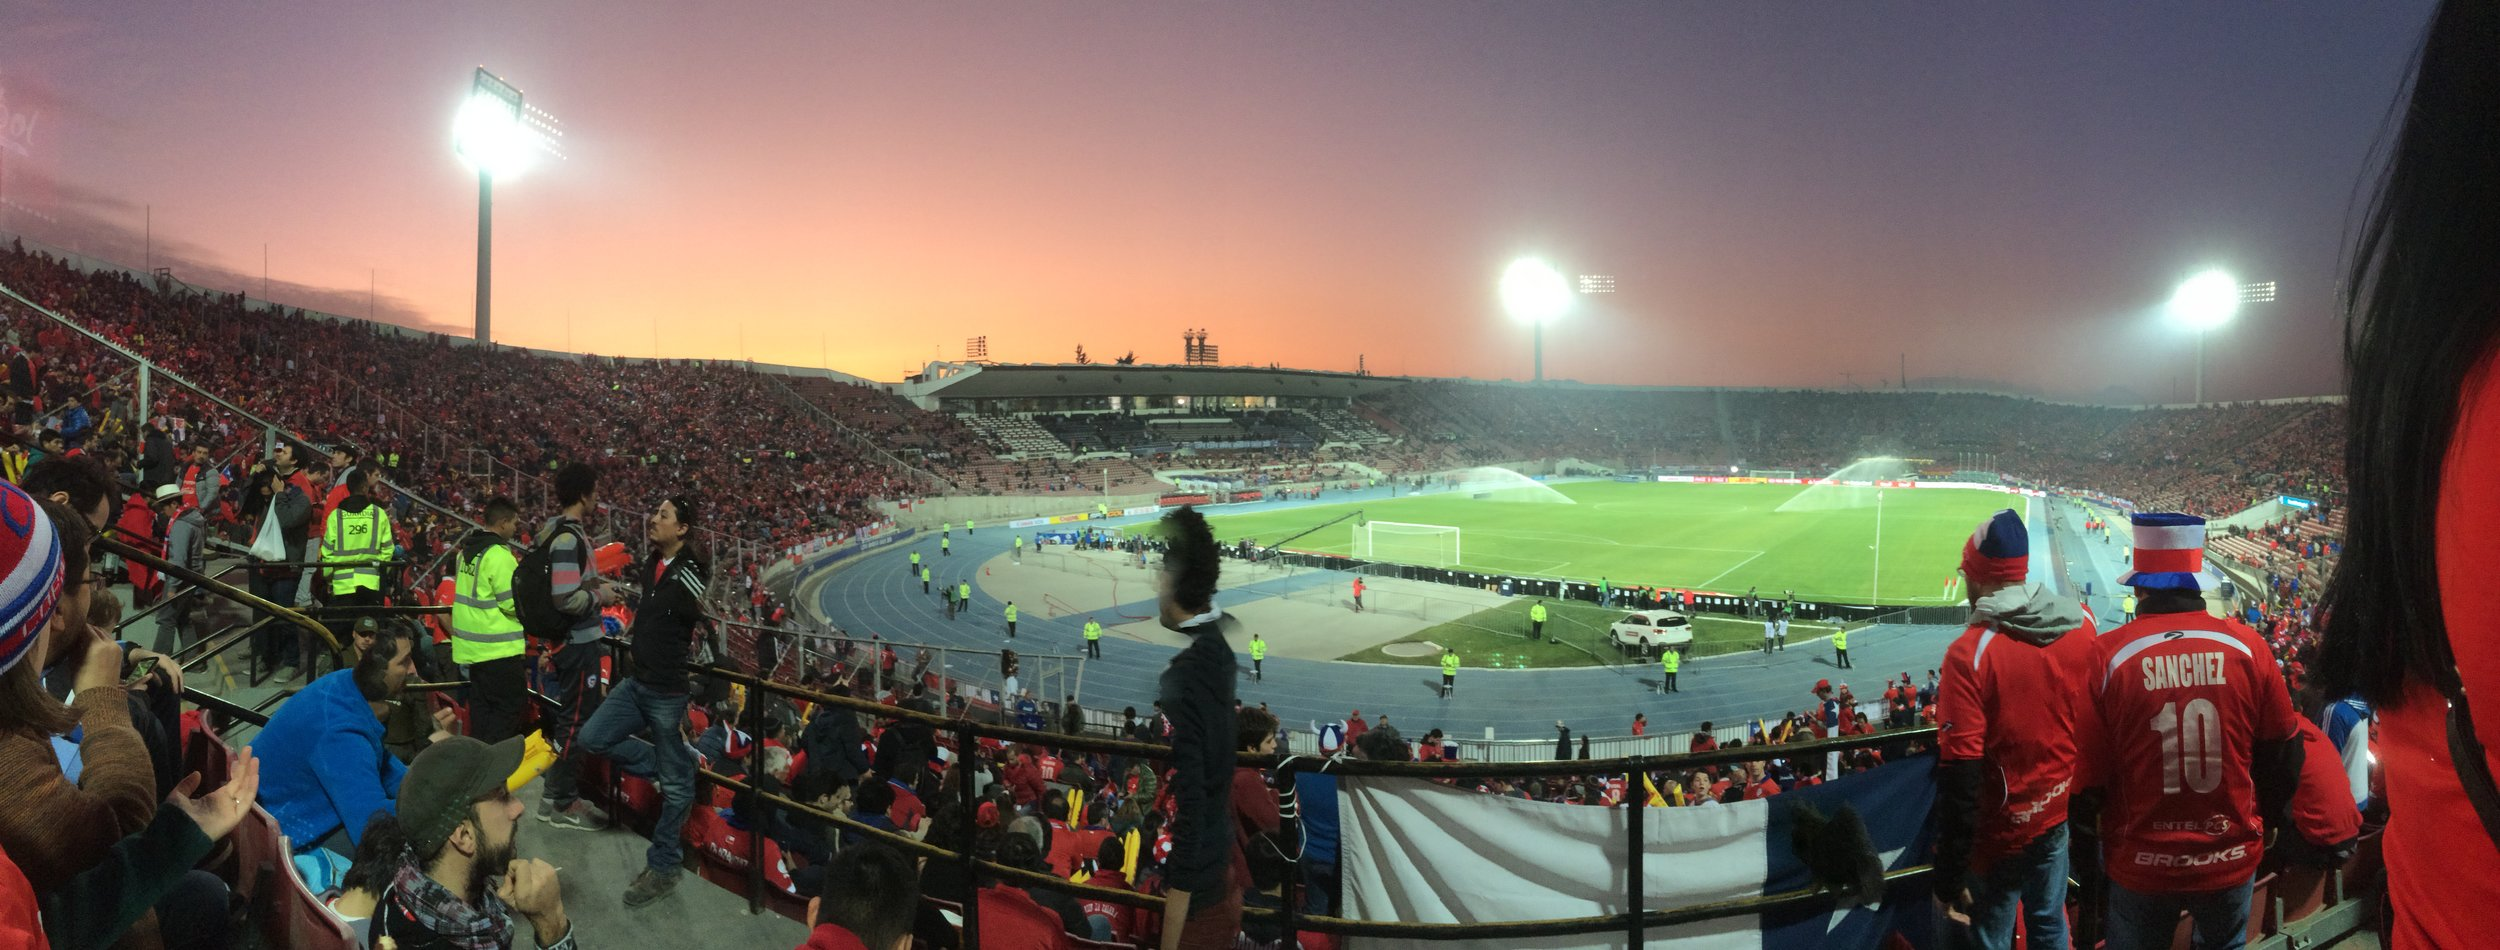 The 2015 semifinal against Peru in the Estadio Nacional, and the beautiful sunsets of particulate pollution